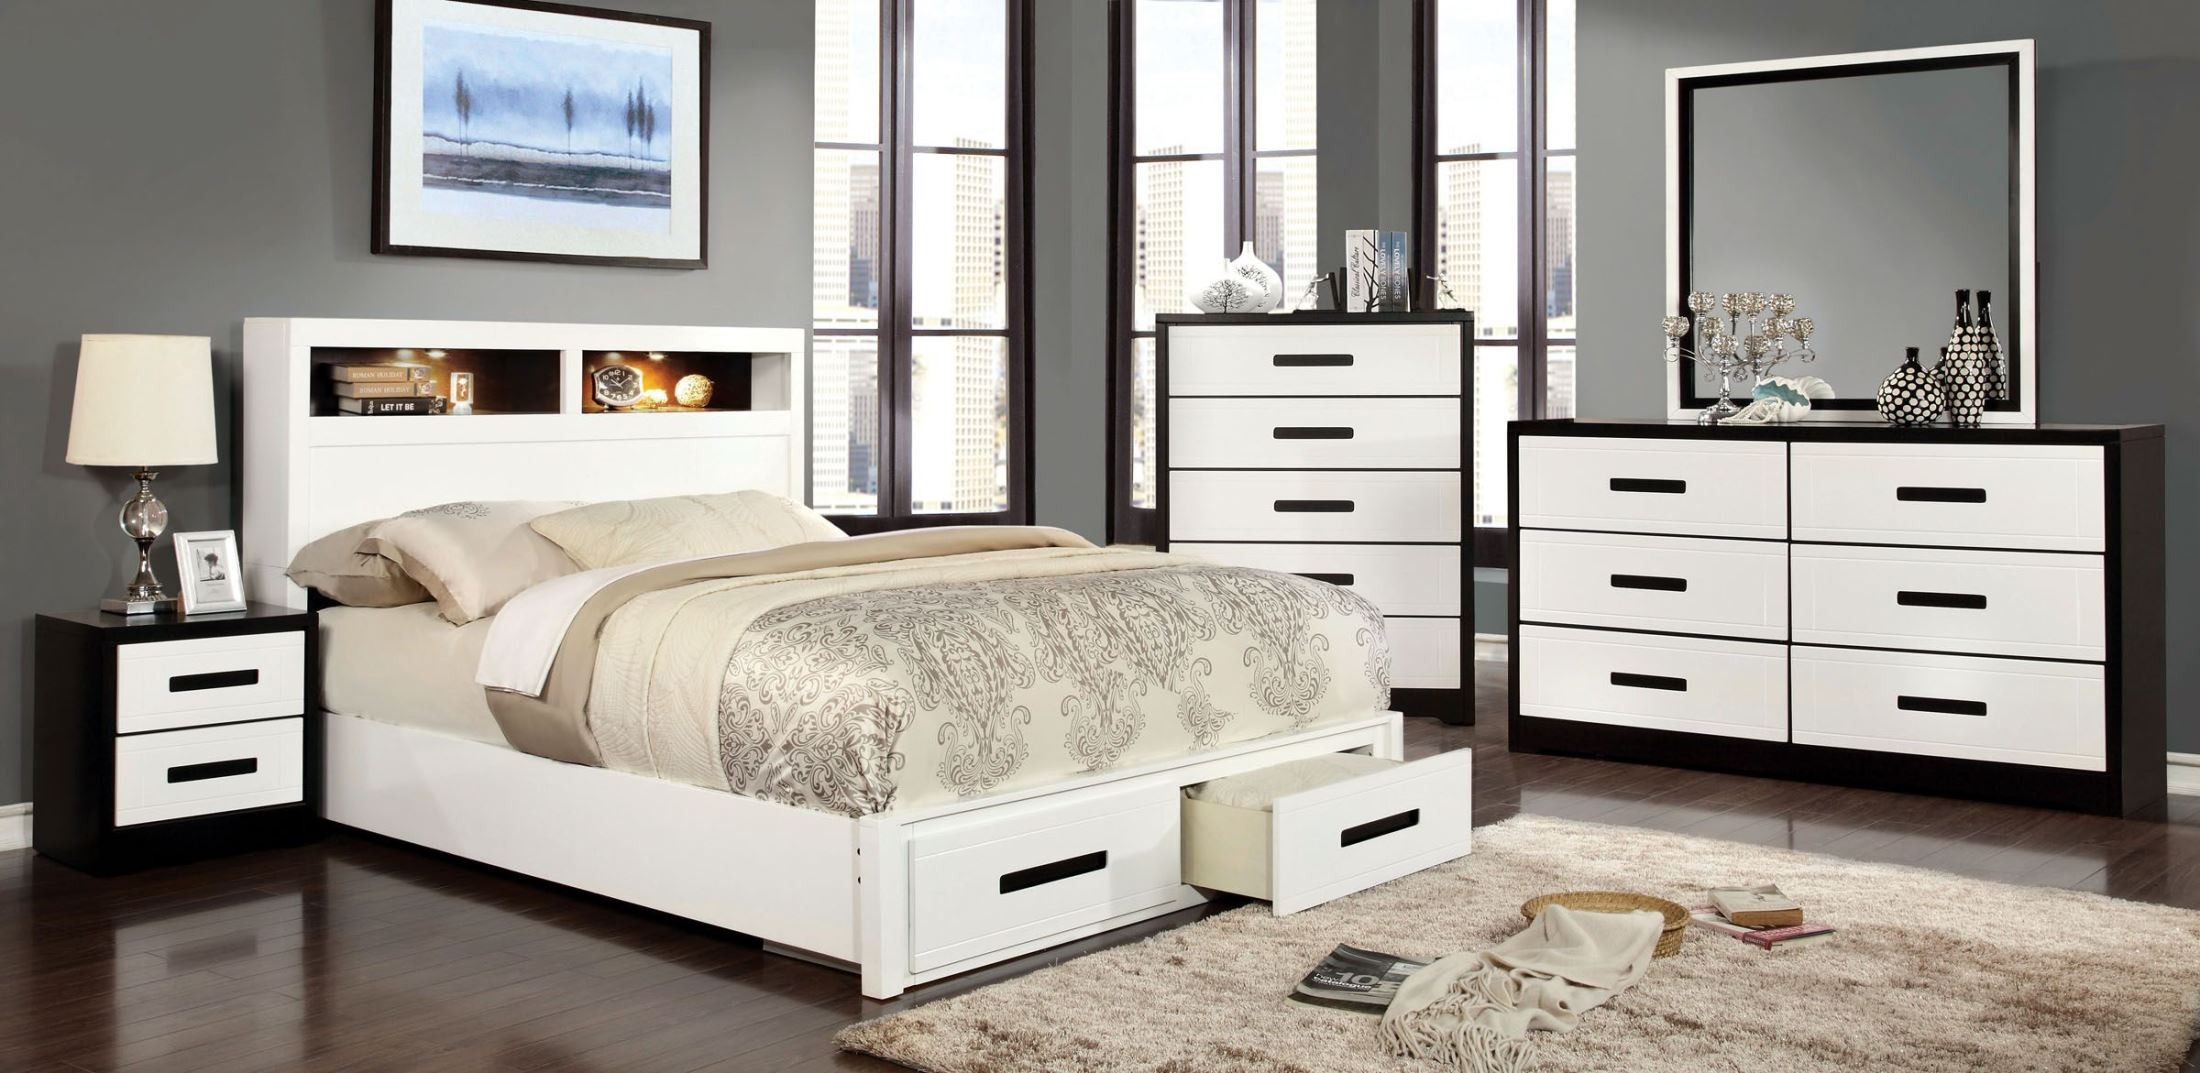 Black White Bedroom Furniture: Rutger White And Black Storage Bedroom Set From Furniture